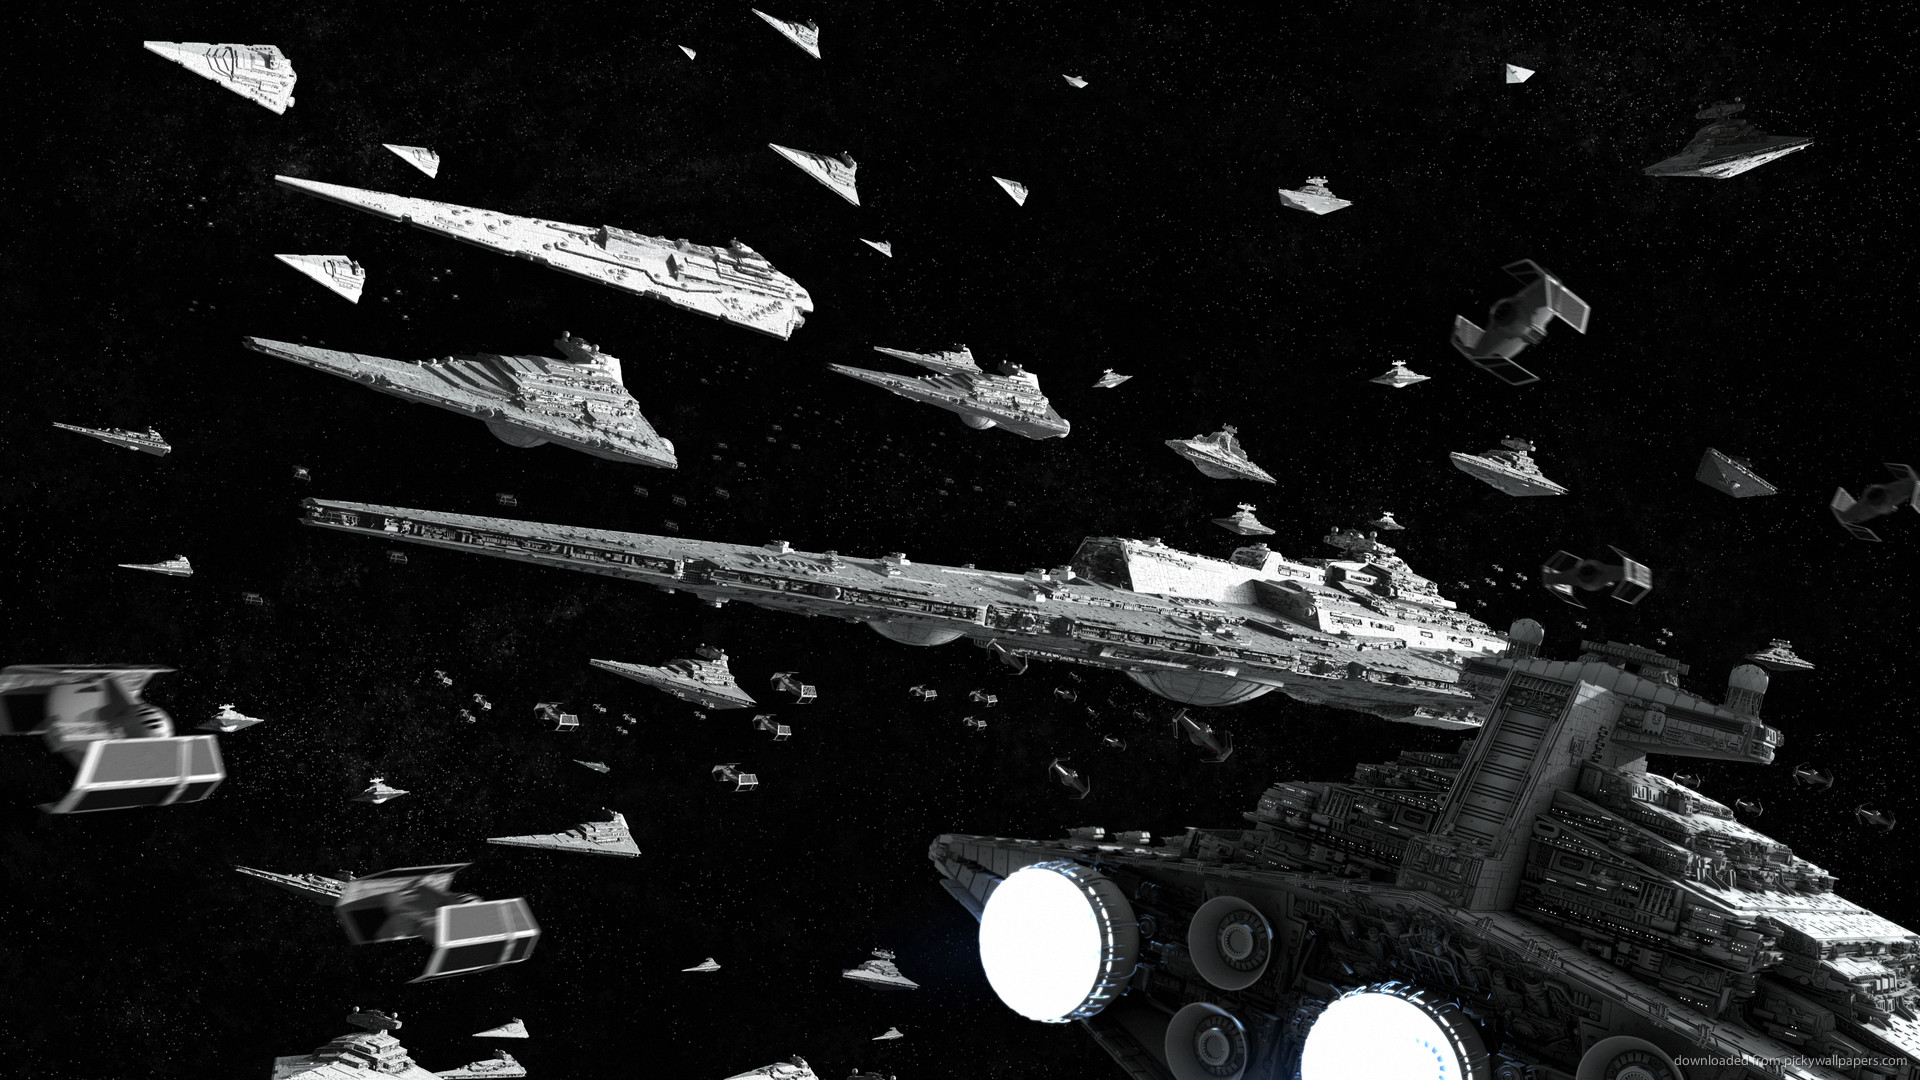 1920x1080 Star Wars Imperial Fleet picture